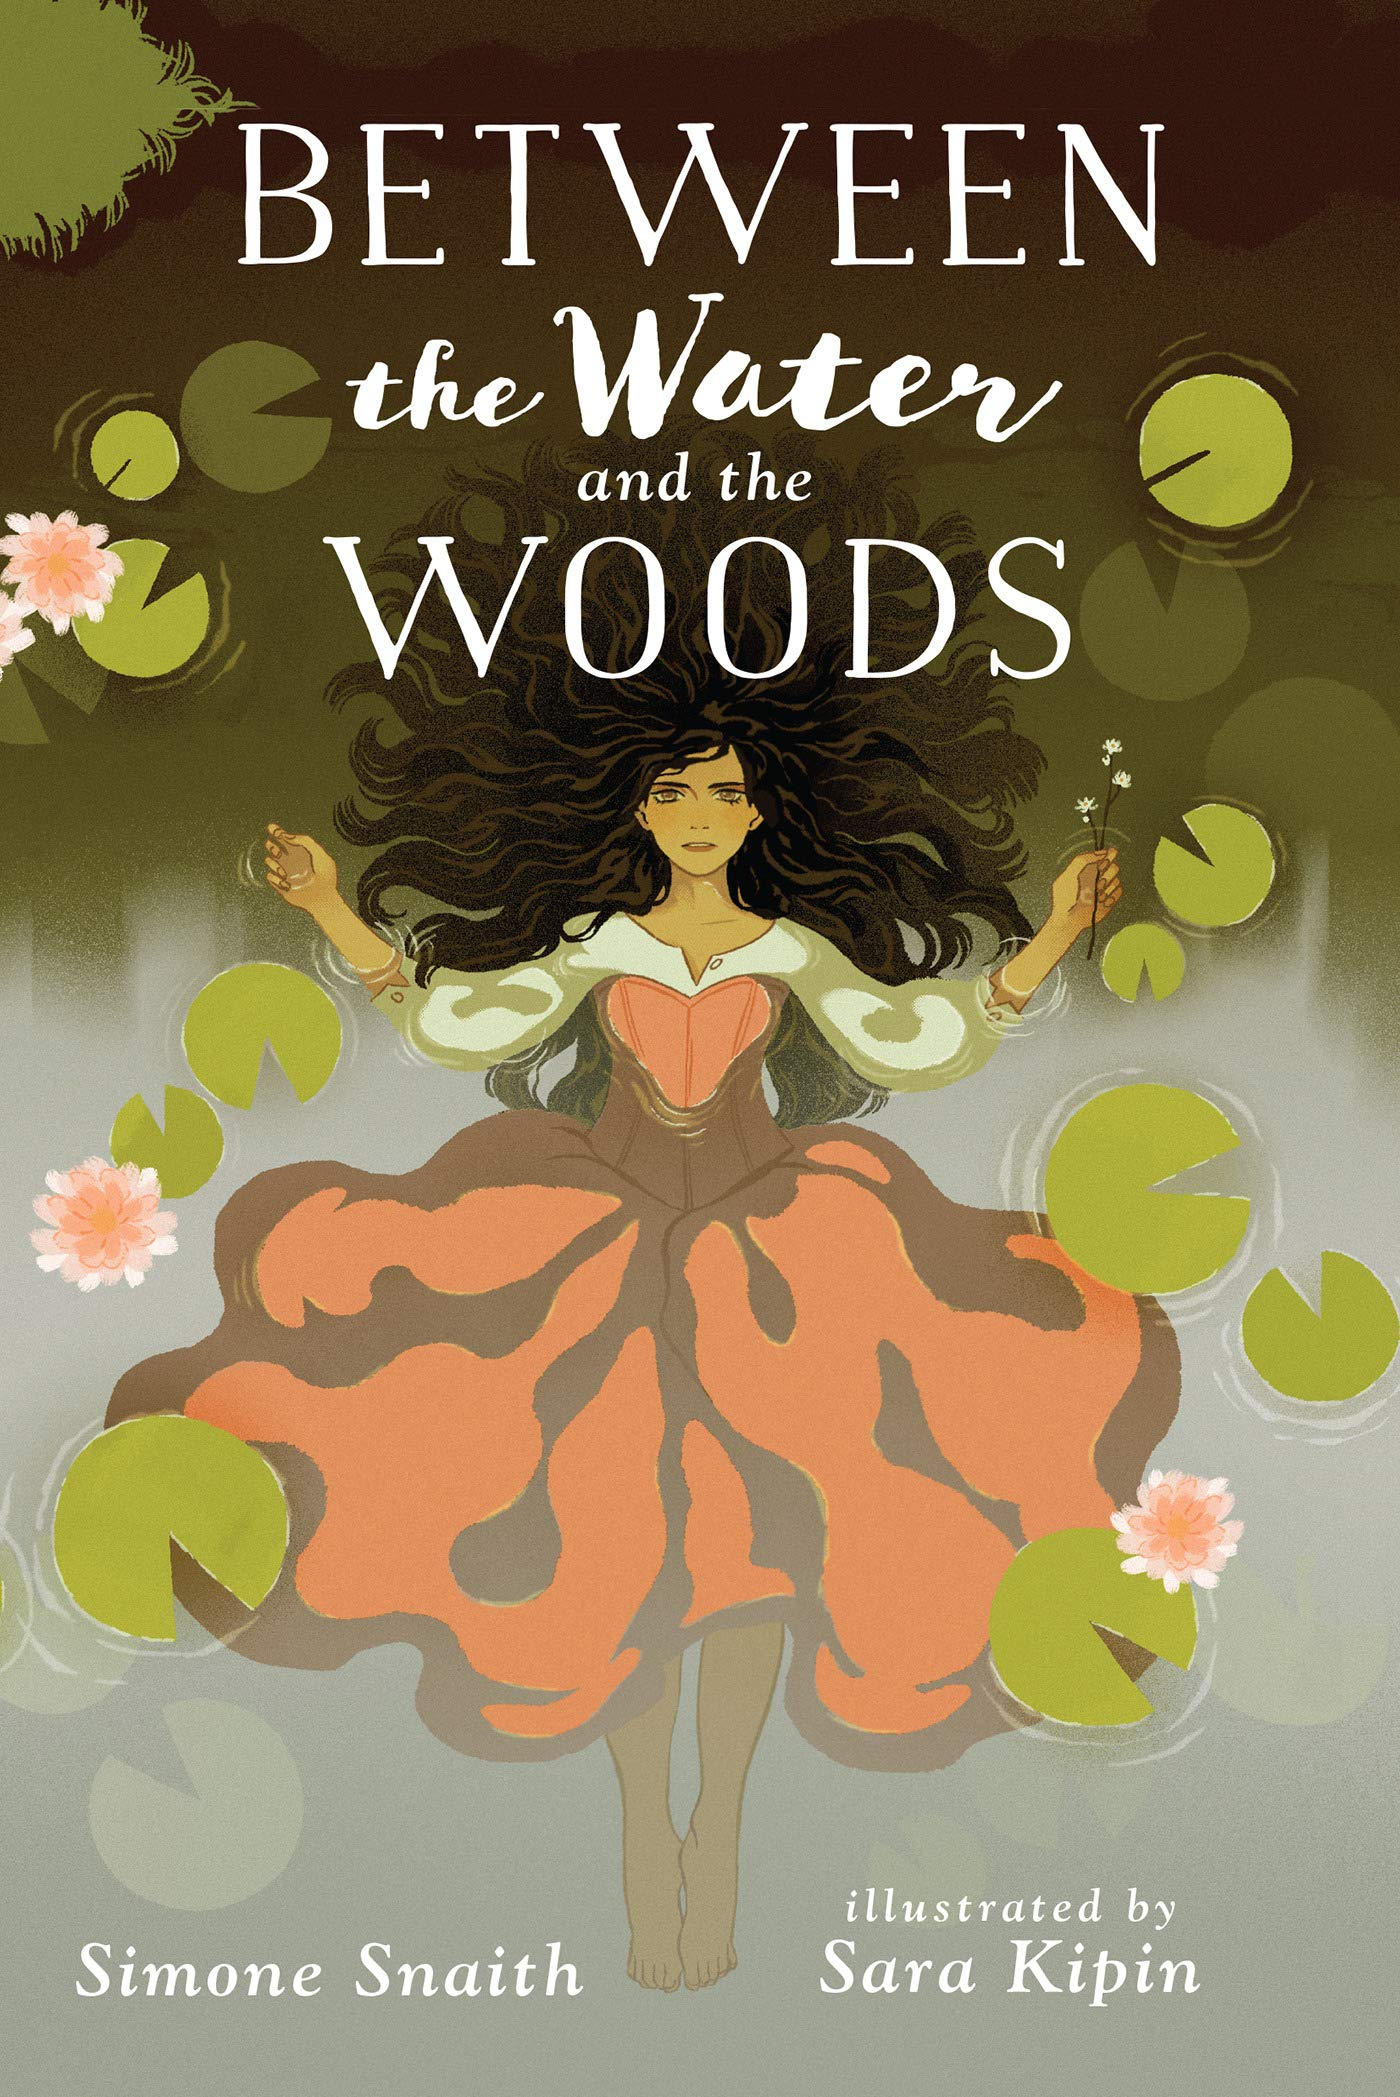 Amazon.com: Between the Water and the Woods (9780823440207 ...